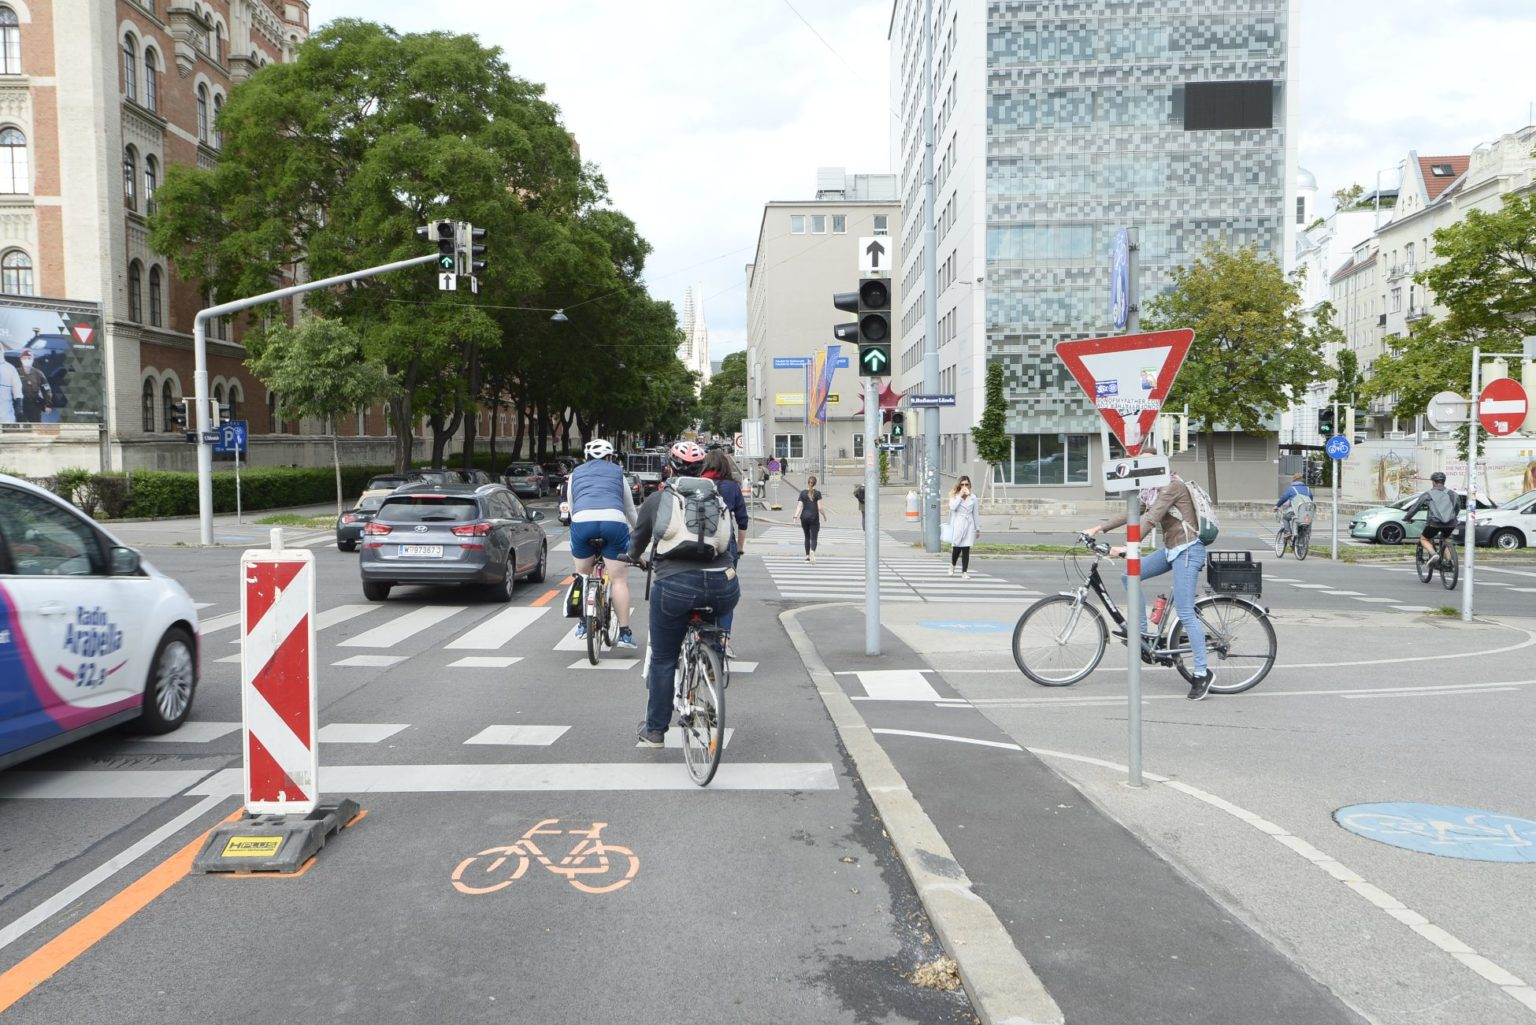 International Study confirms the positive effects of pop-up cycling infrastructure